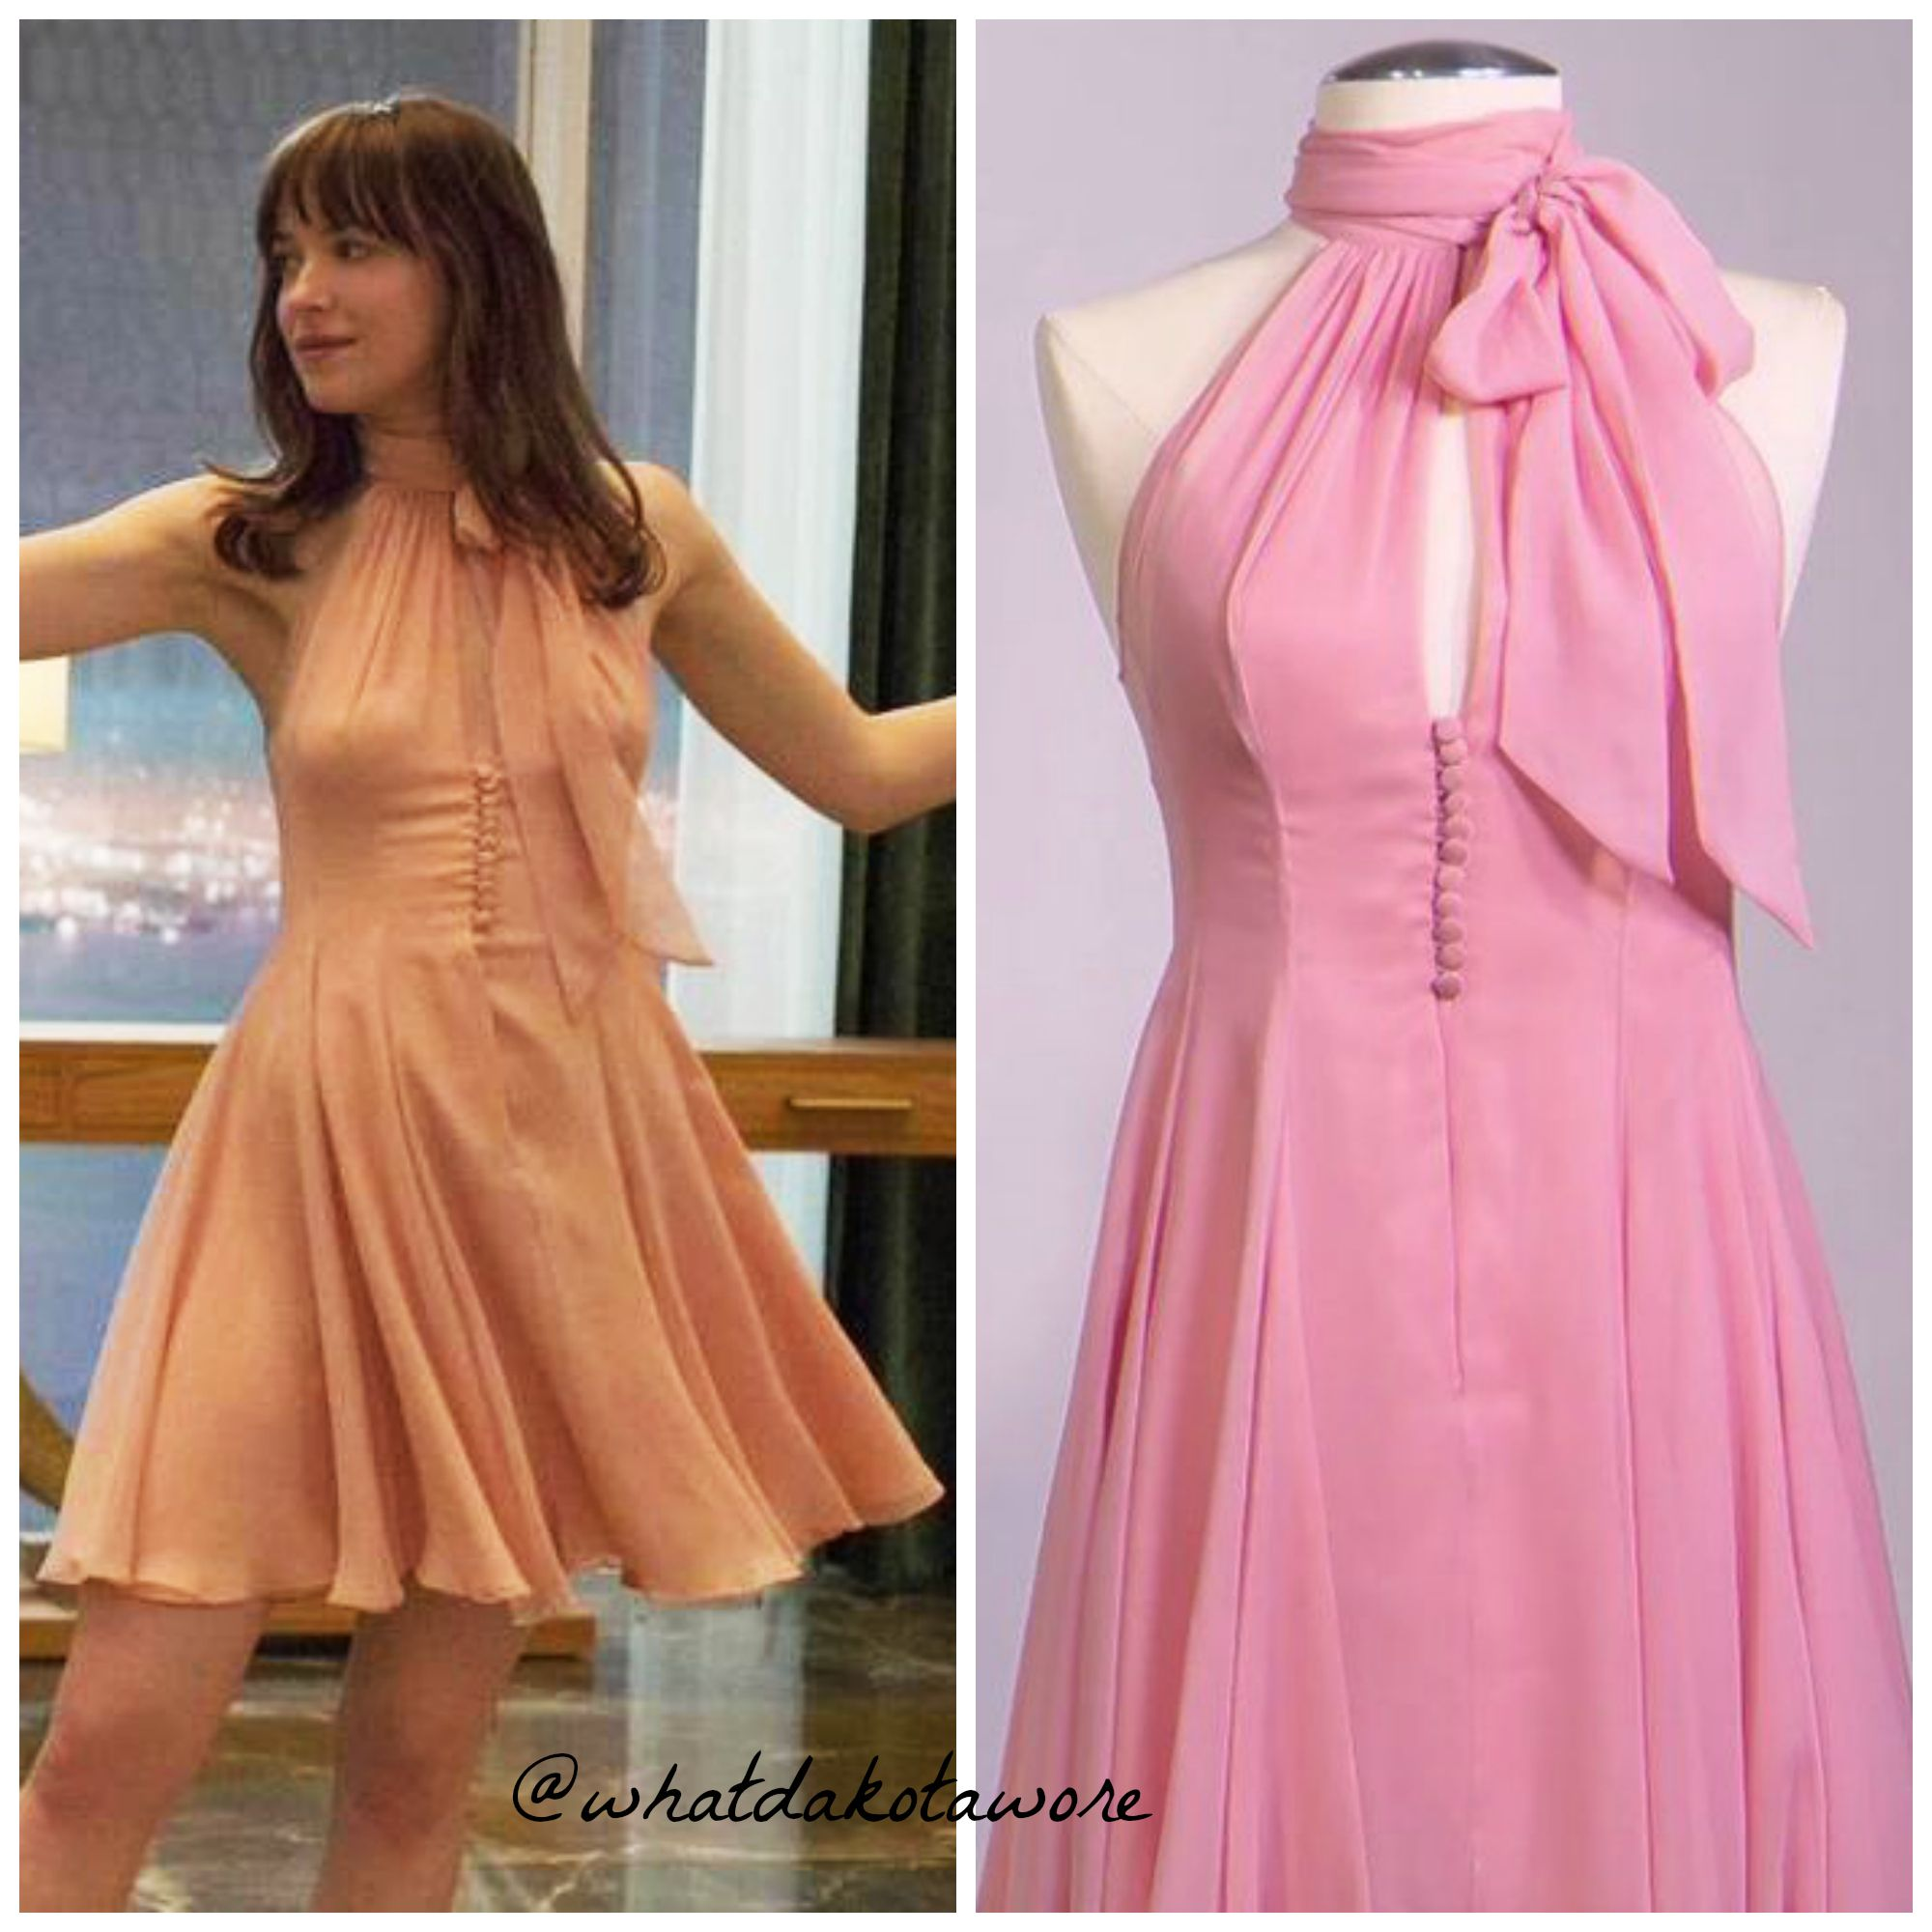 Halter top dress from Fifty Shades of Grey | Dresses | Pinterest ...